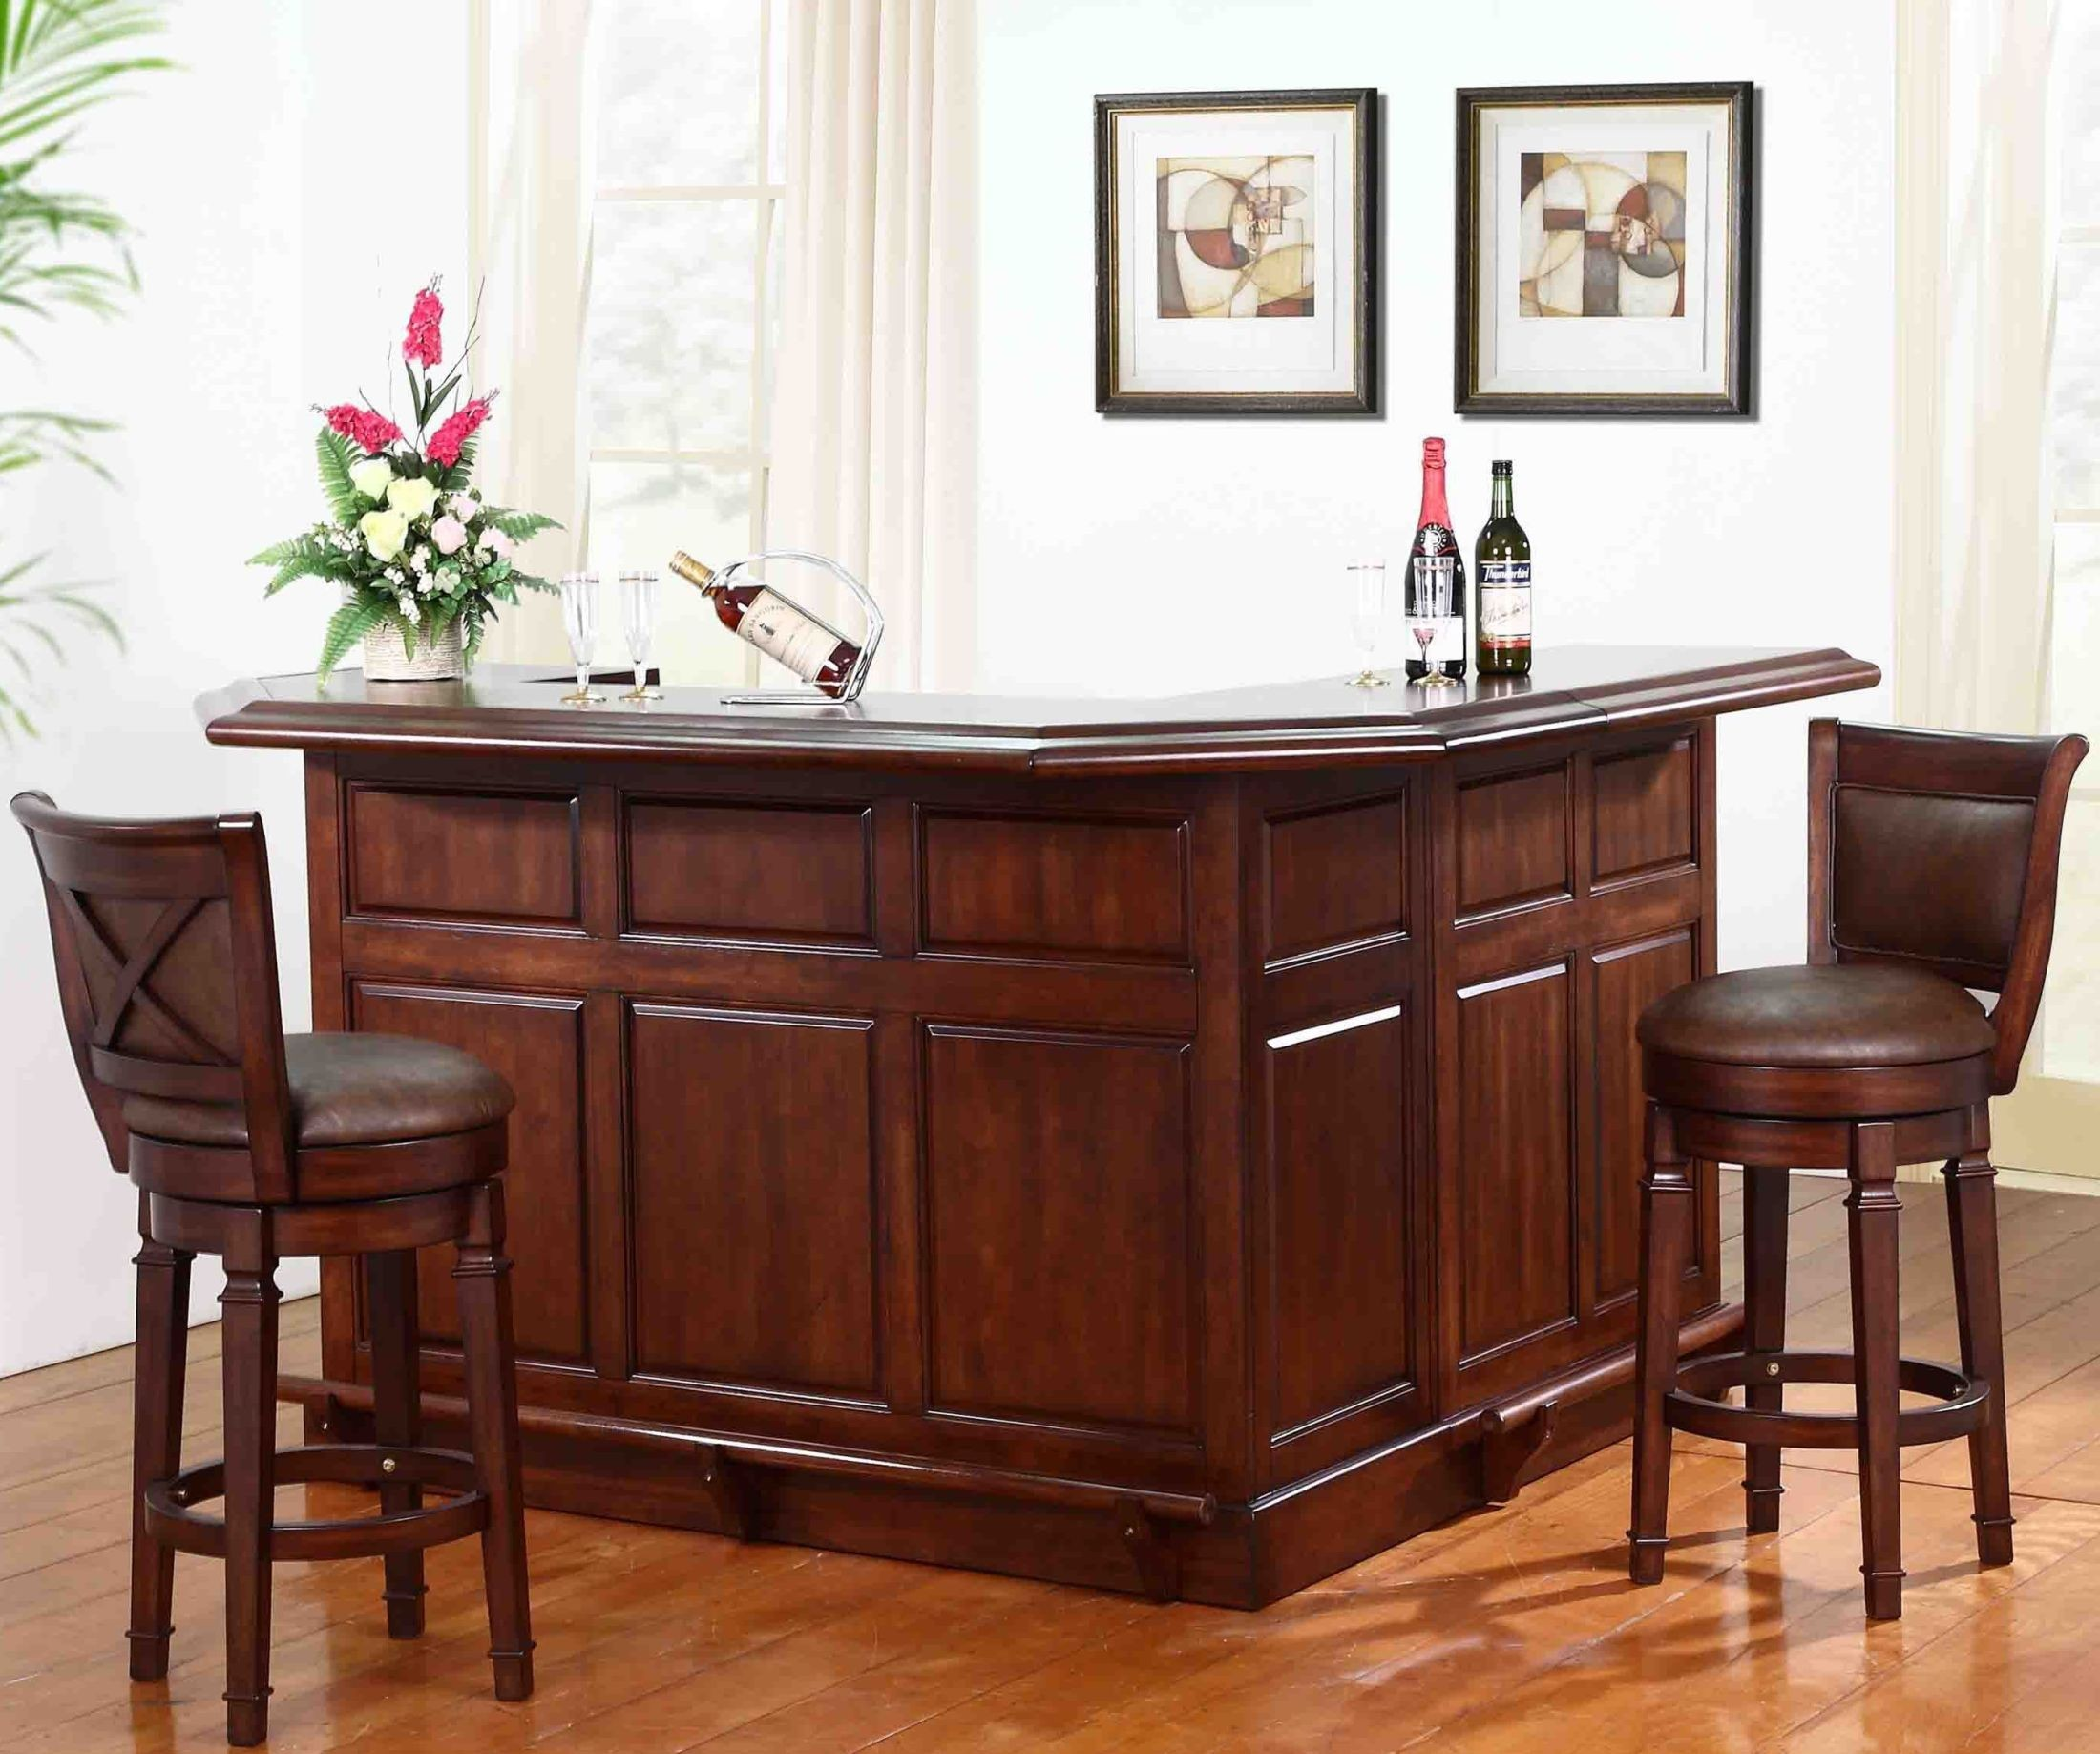 Belvedere Distressed Walnut Return Bar Set From Eci